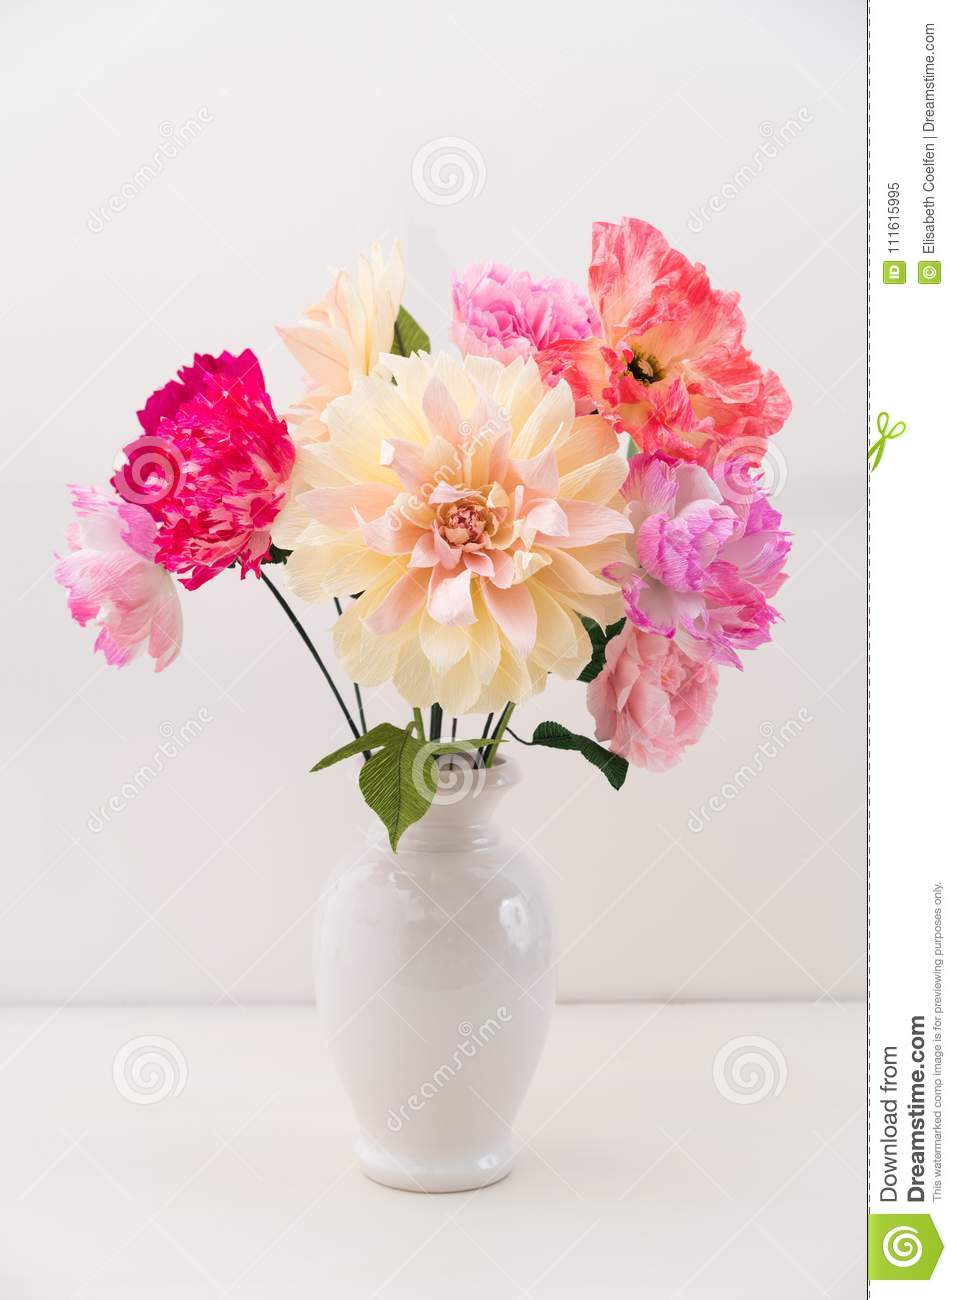 Crepe Paper Flower Bouquet Stock Image Image Of Handmade 111615995